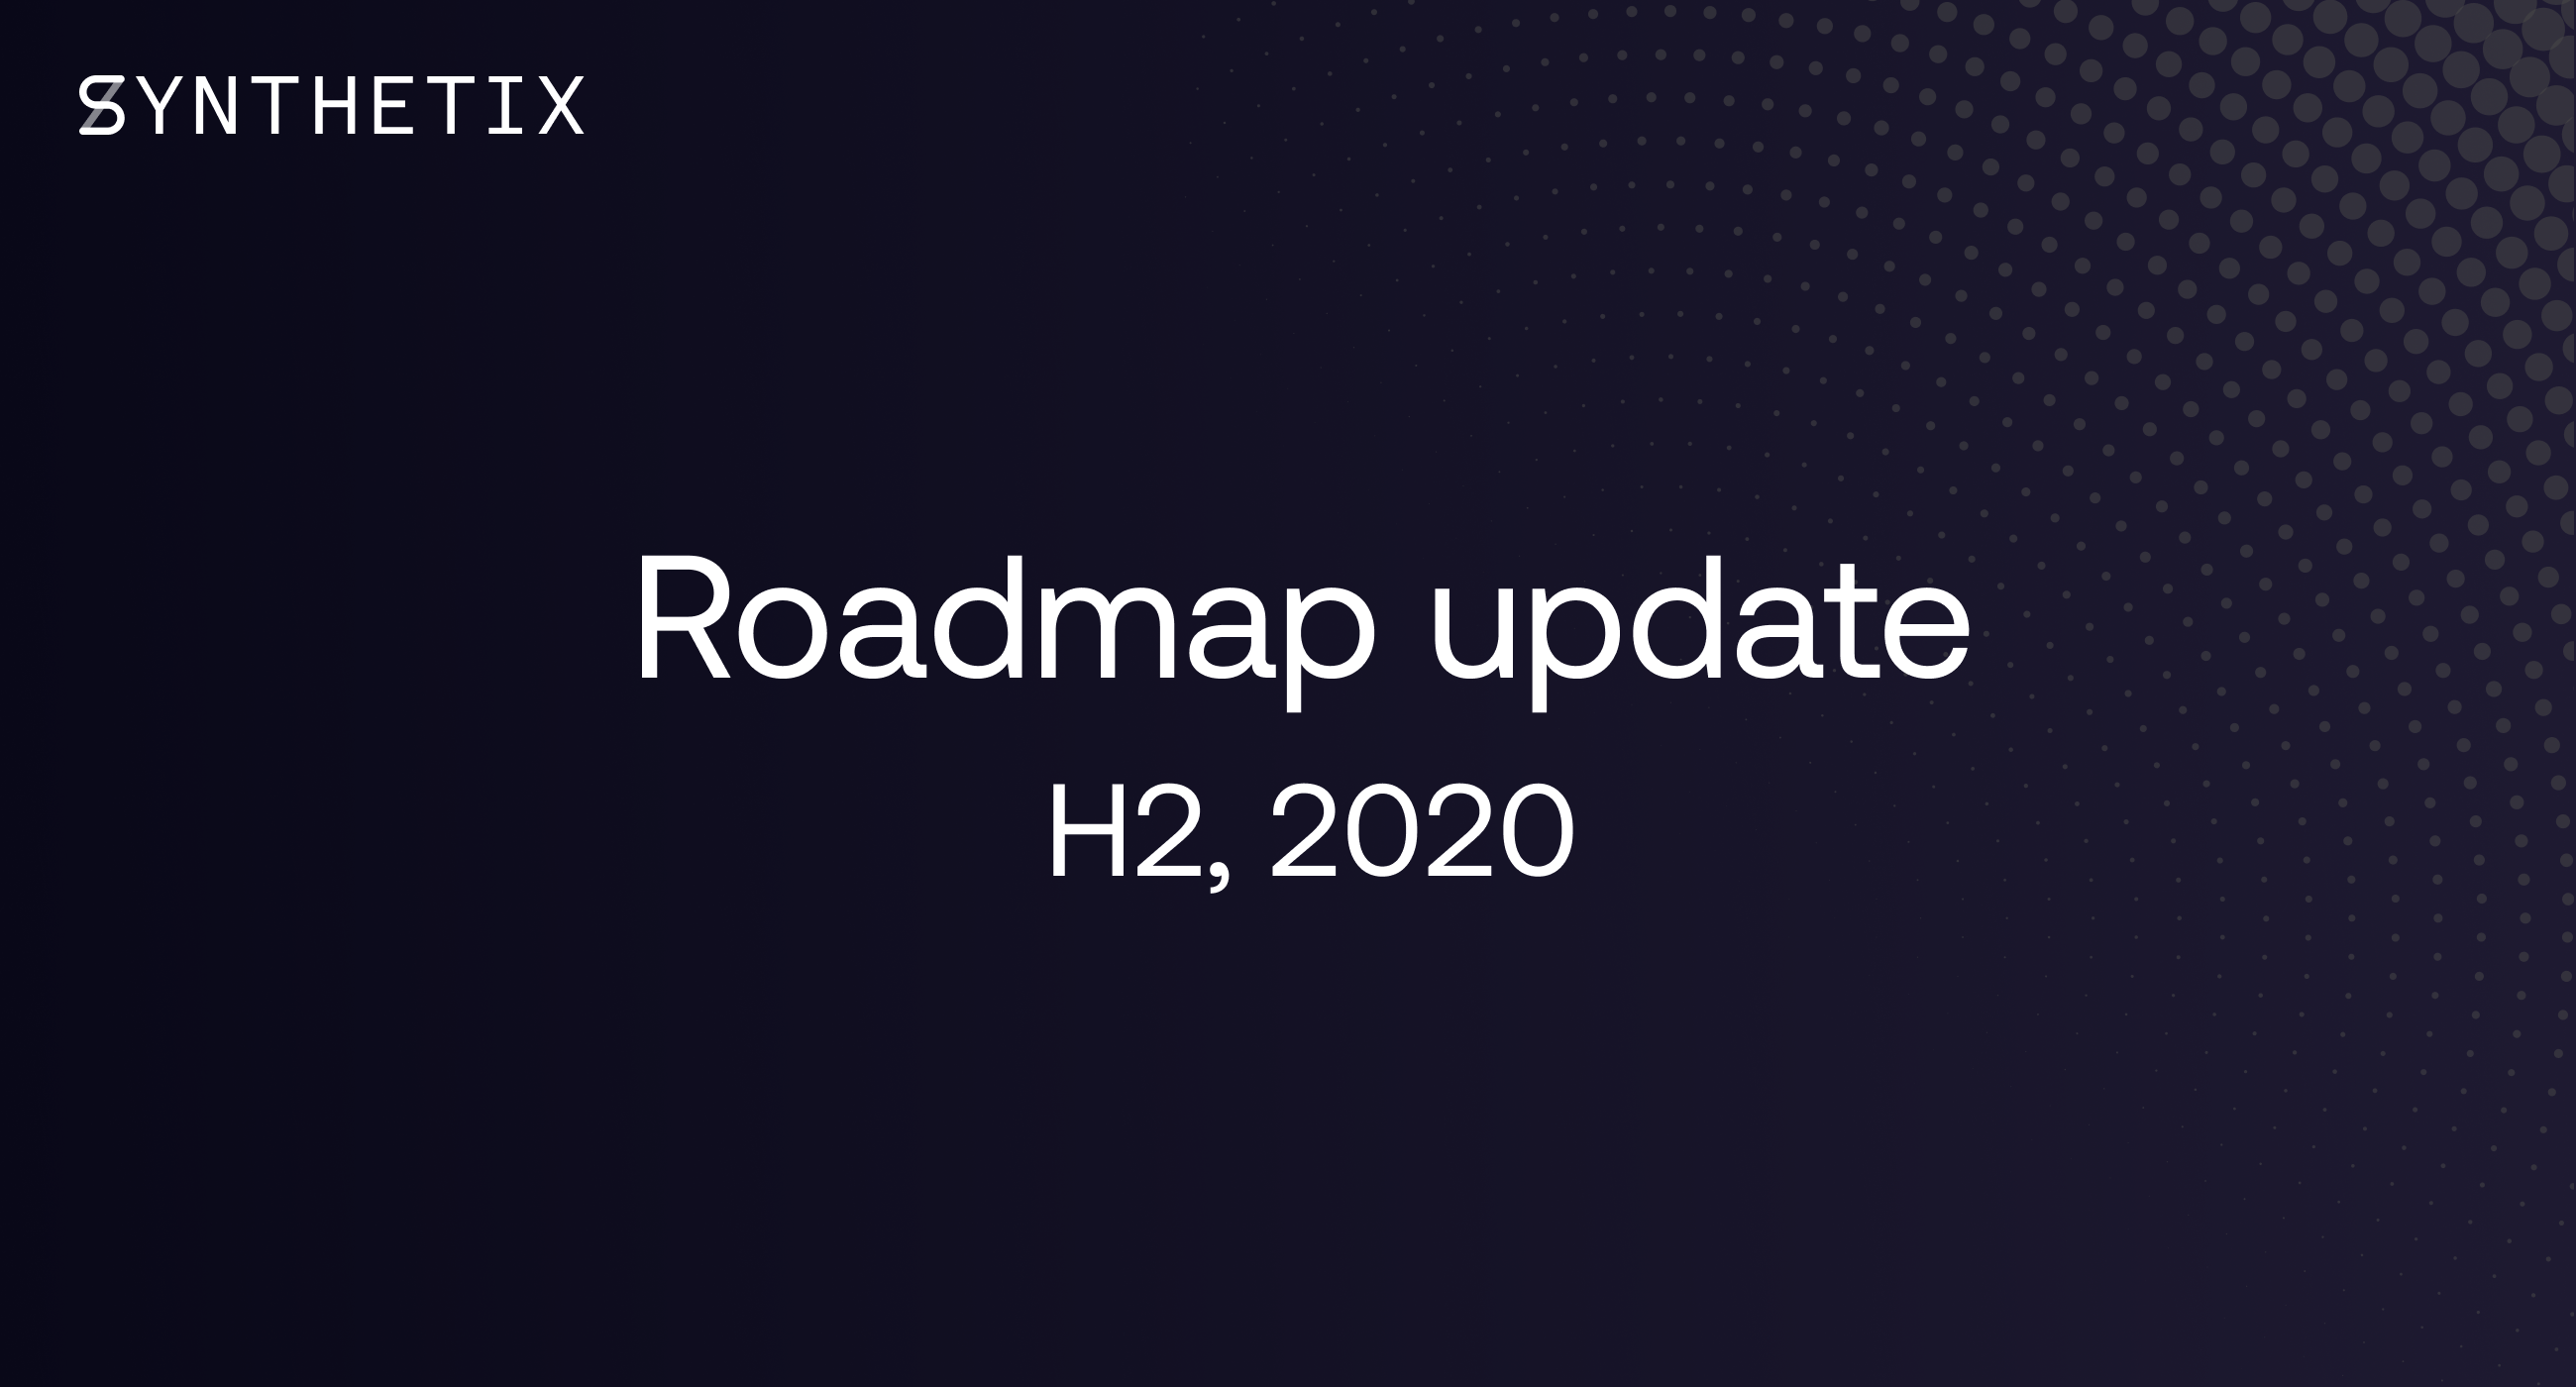 Roadmap Update H2, 2020